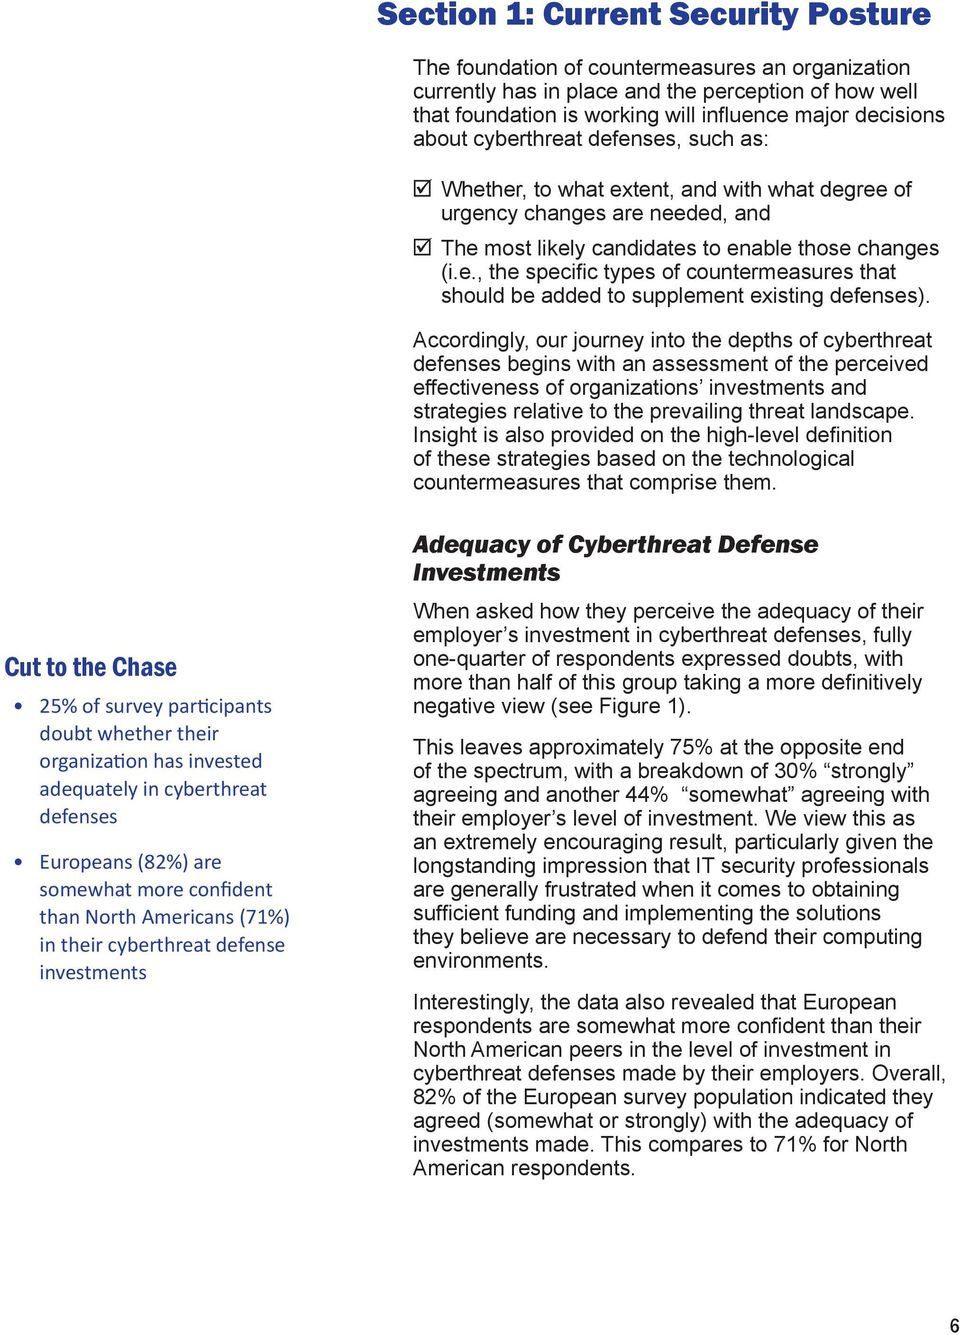 Accordingly, our journey into the depths of cyberthreat defenses begins with an assessment of the perceived effectiveness of organizations investments and strategies relative to the prevailing threat